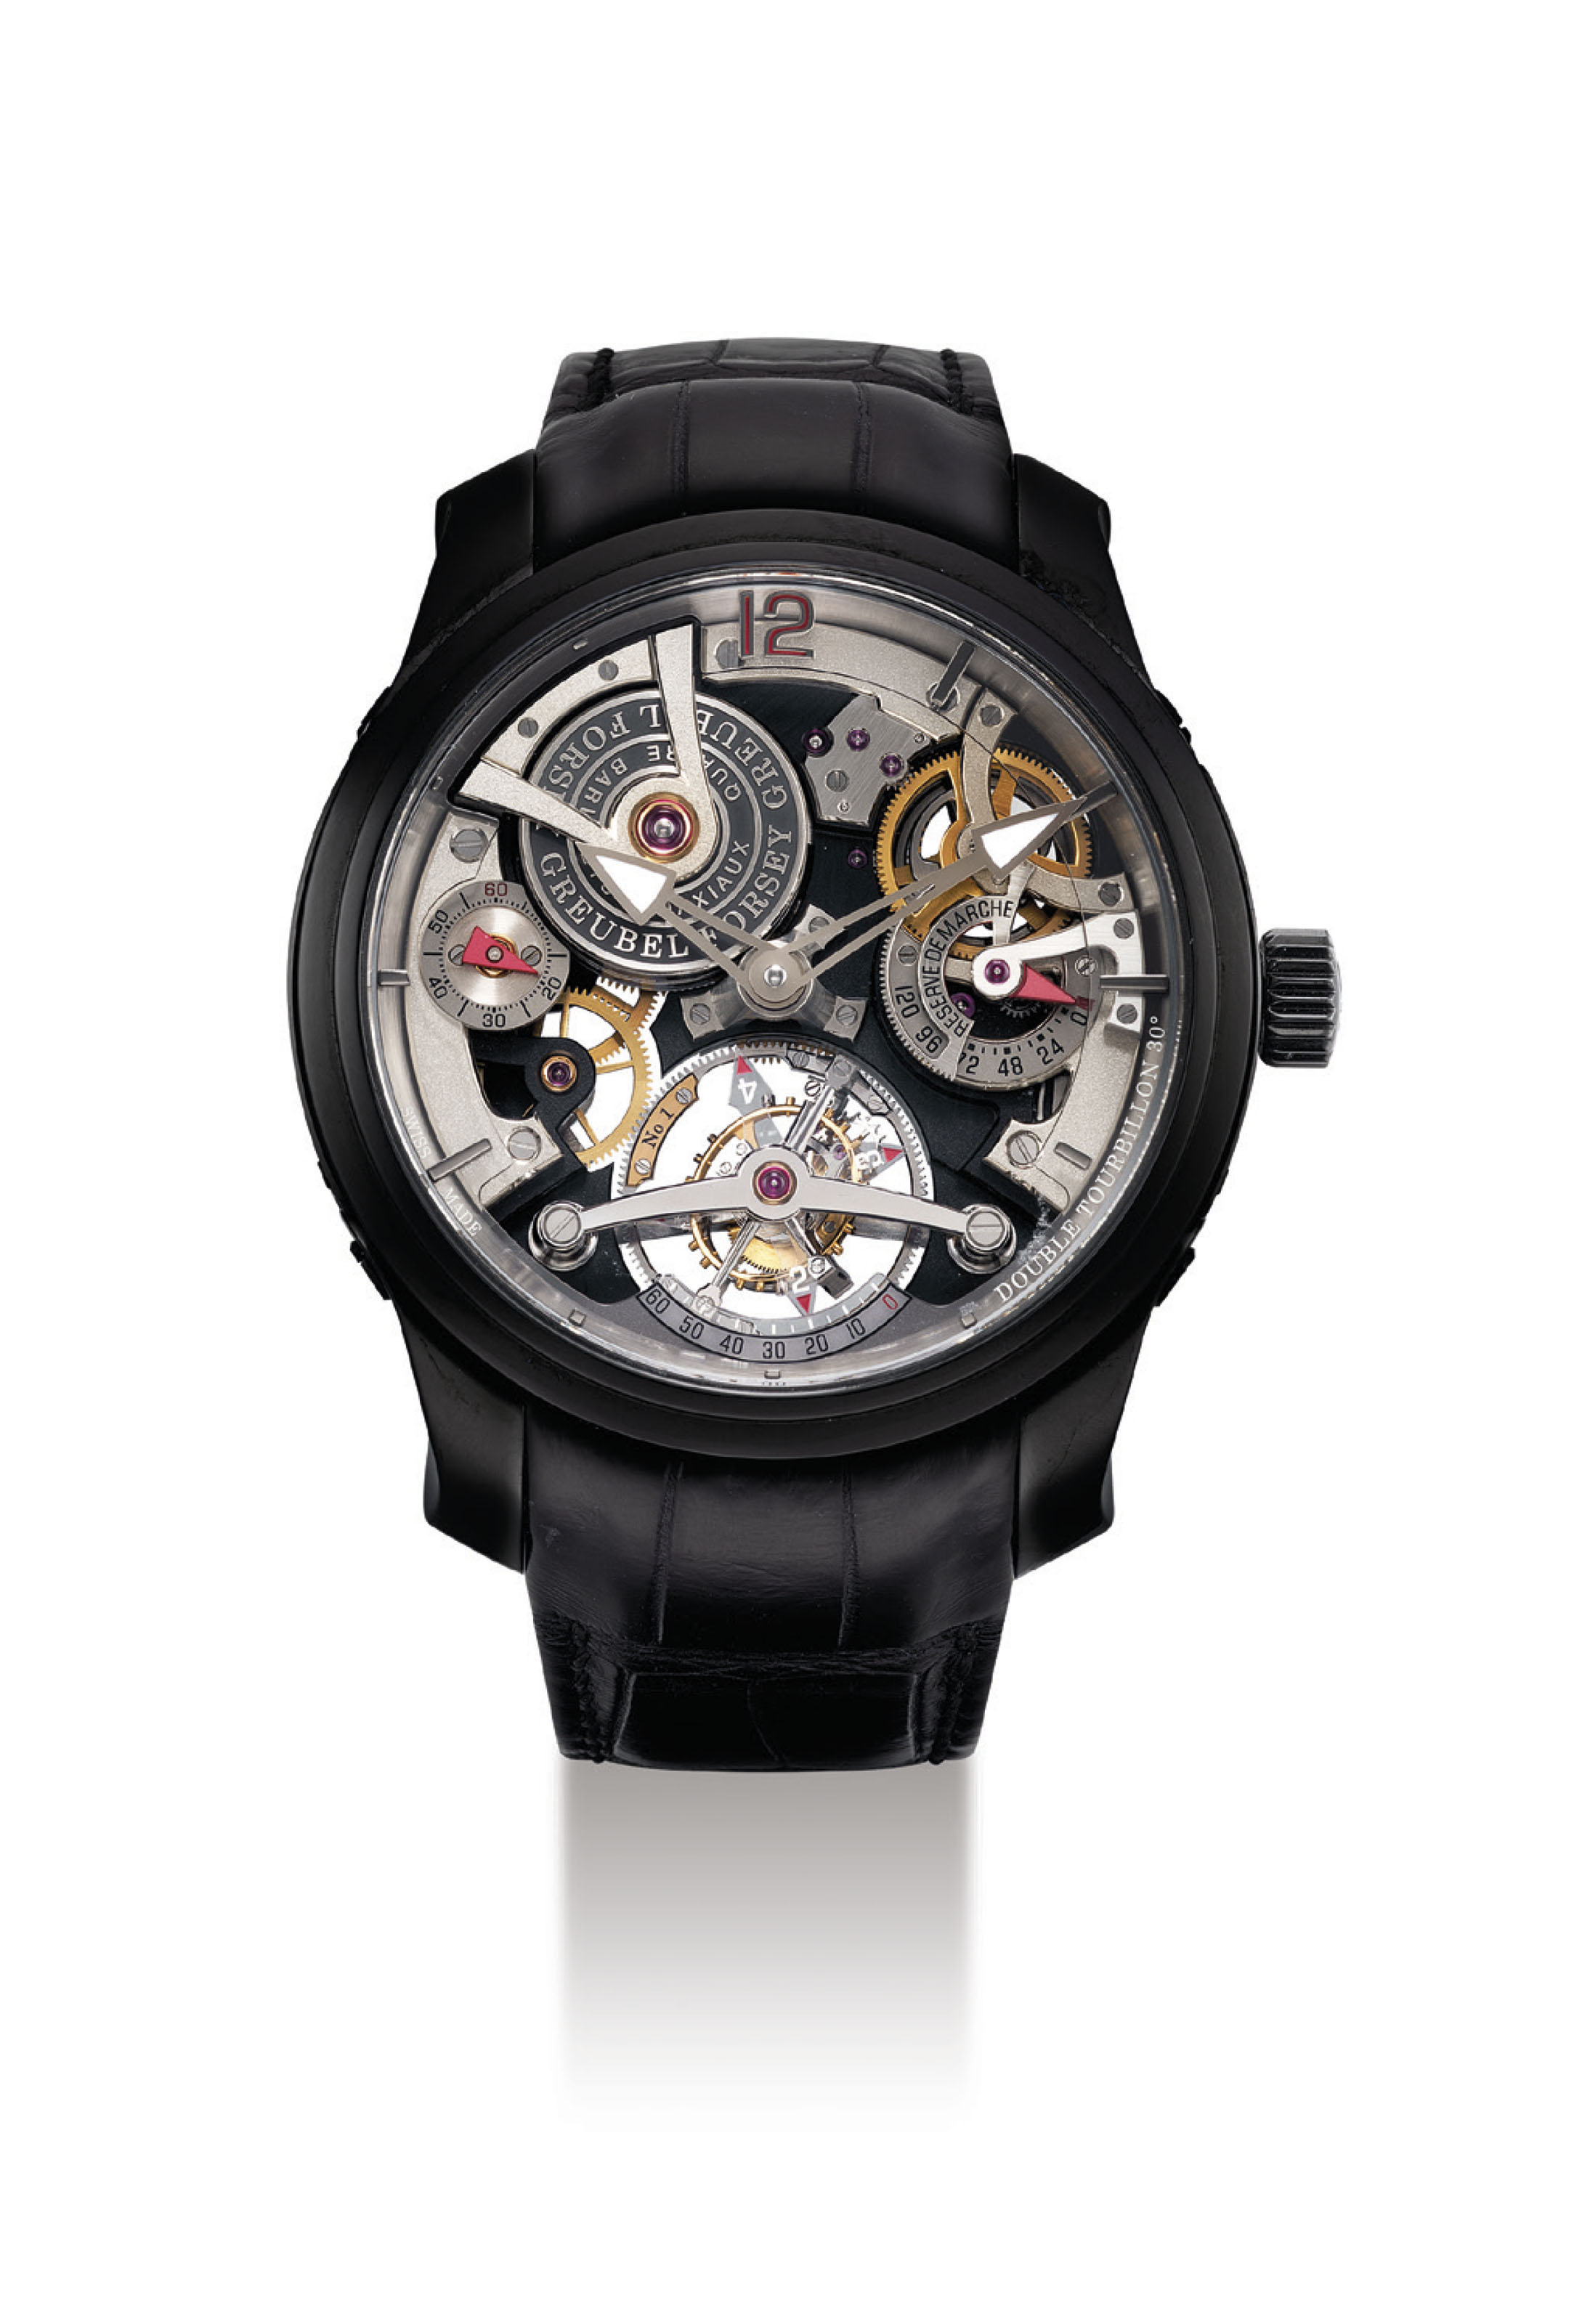 GREUBEL FORSEY. AN IMPORTANT AND VERY FINE BLACK ADLC-COATED PLATINUM SEMI-SKELETONISED 30° INCLINED DOUBLE TOURBILLON WRISTWATCH WITH 120 HOURS POWER RESERVE